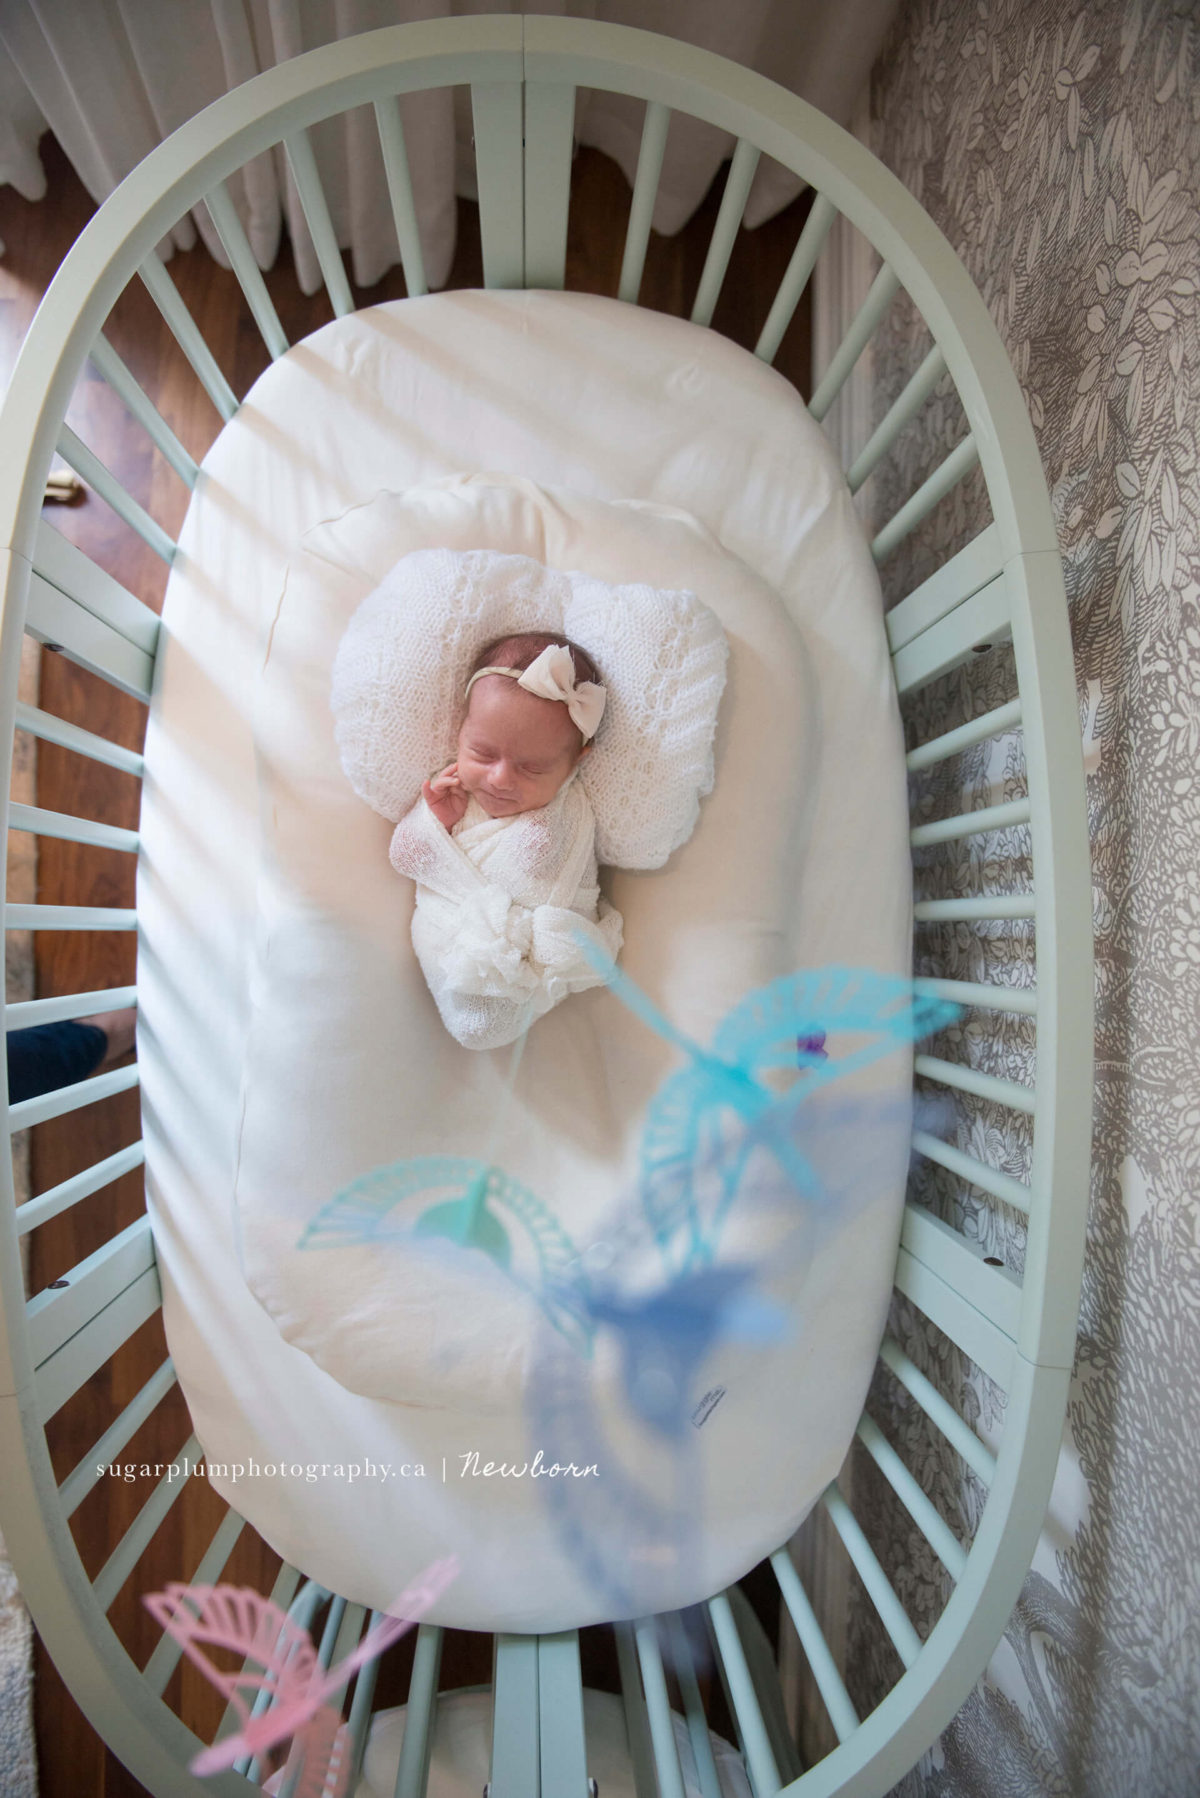 swaddled newborn in her crib